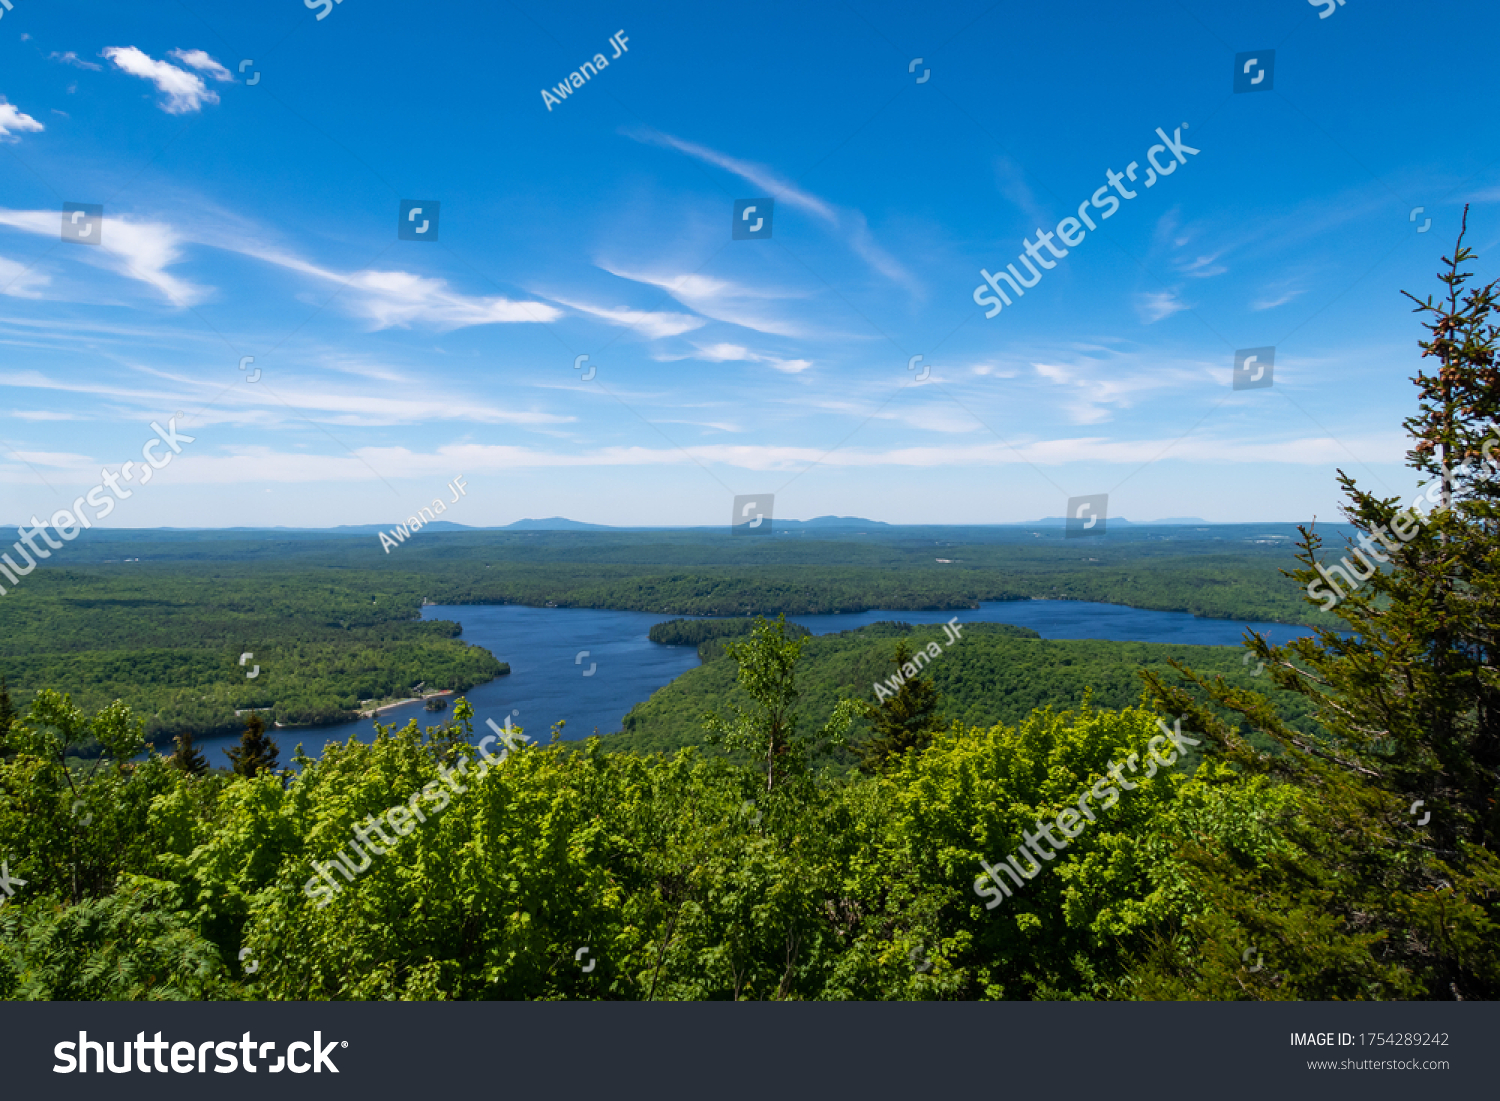 stock-photo-beautiful-view-of-the-mont-o